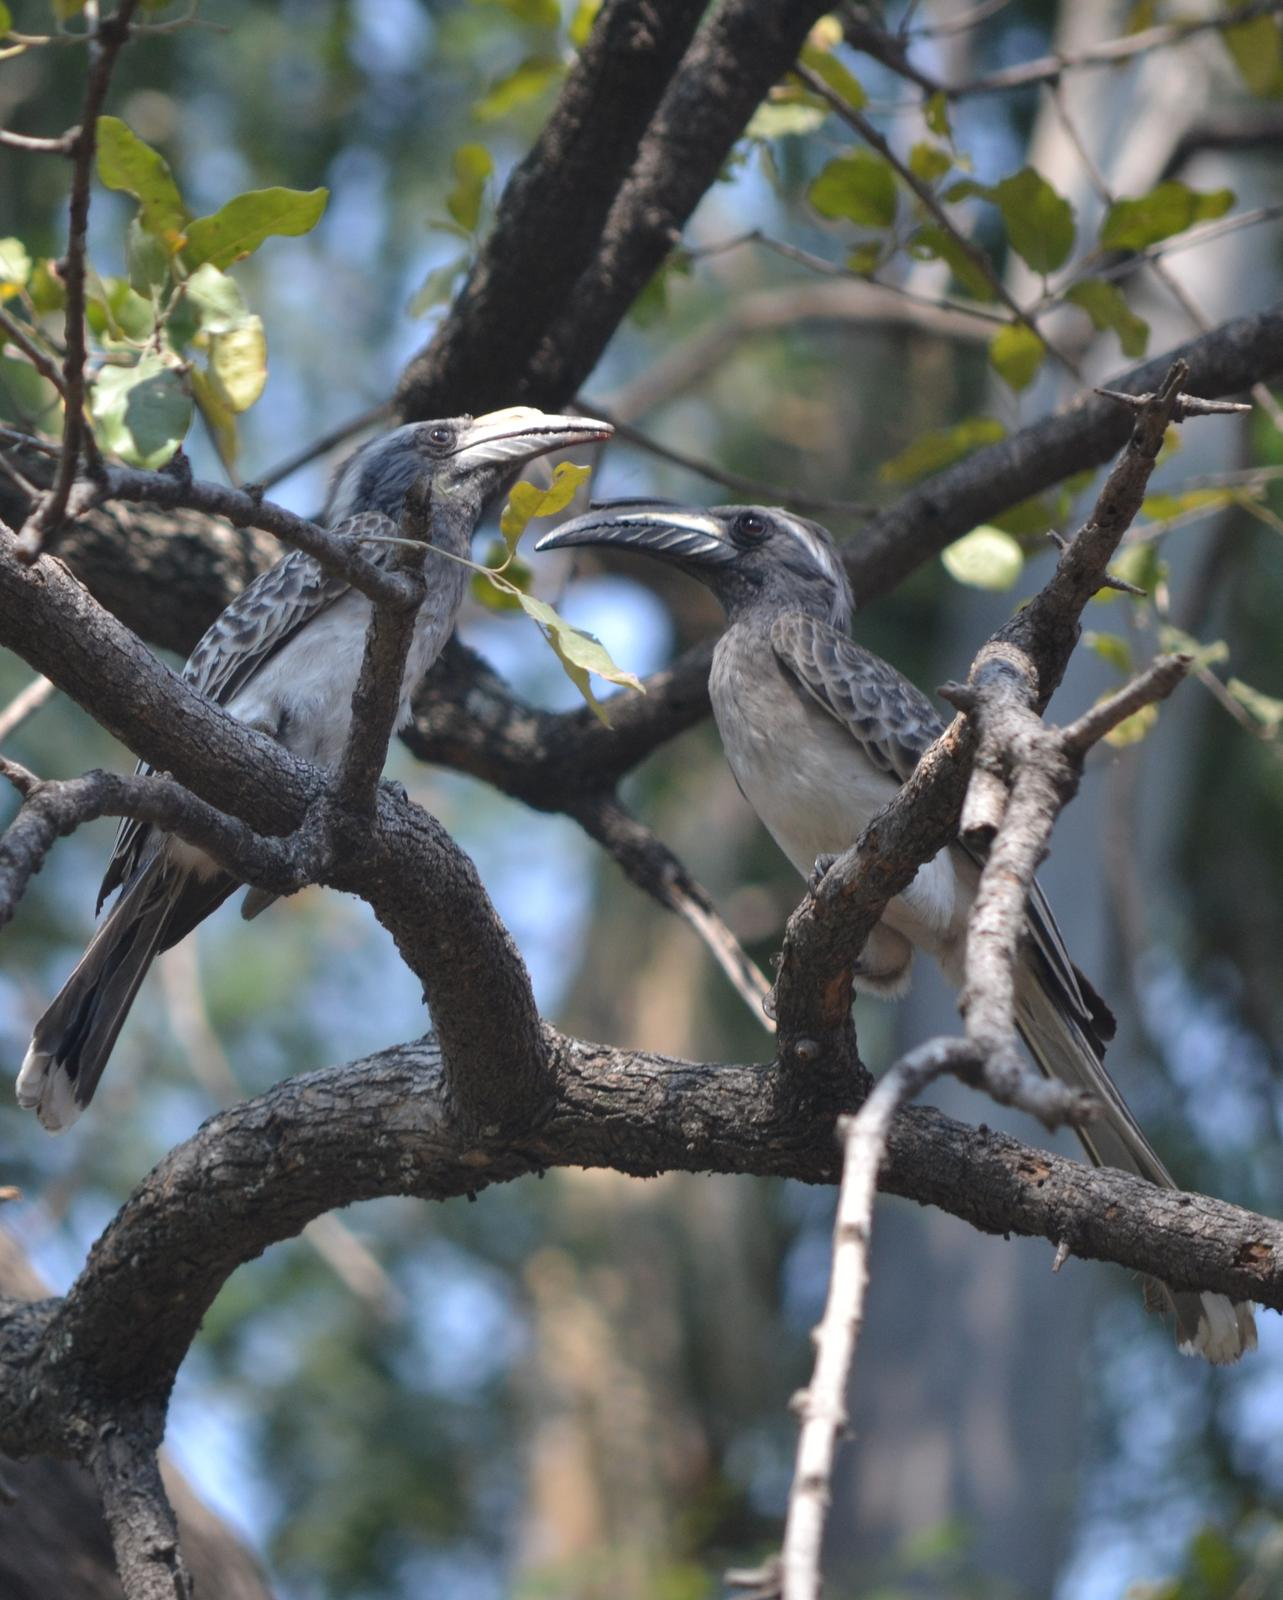 African Gray Hornbill Photo by George Mayfield